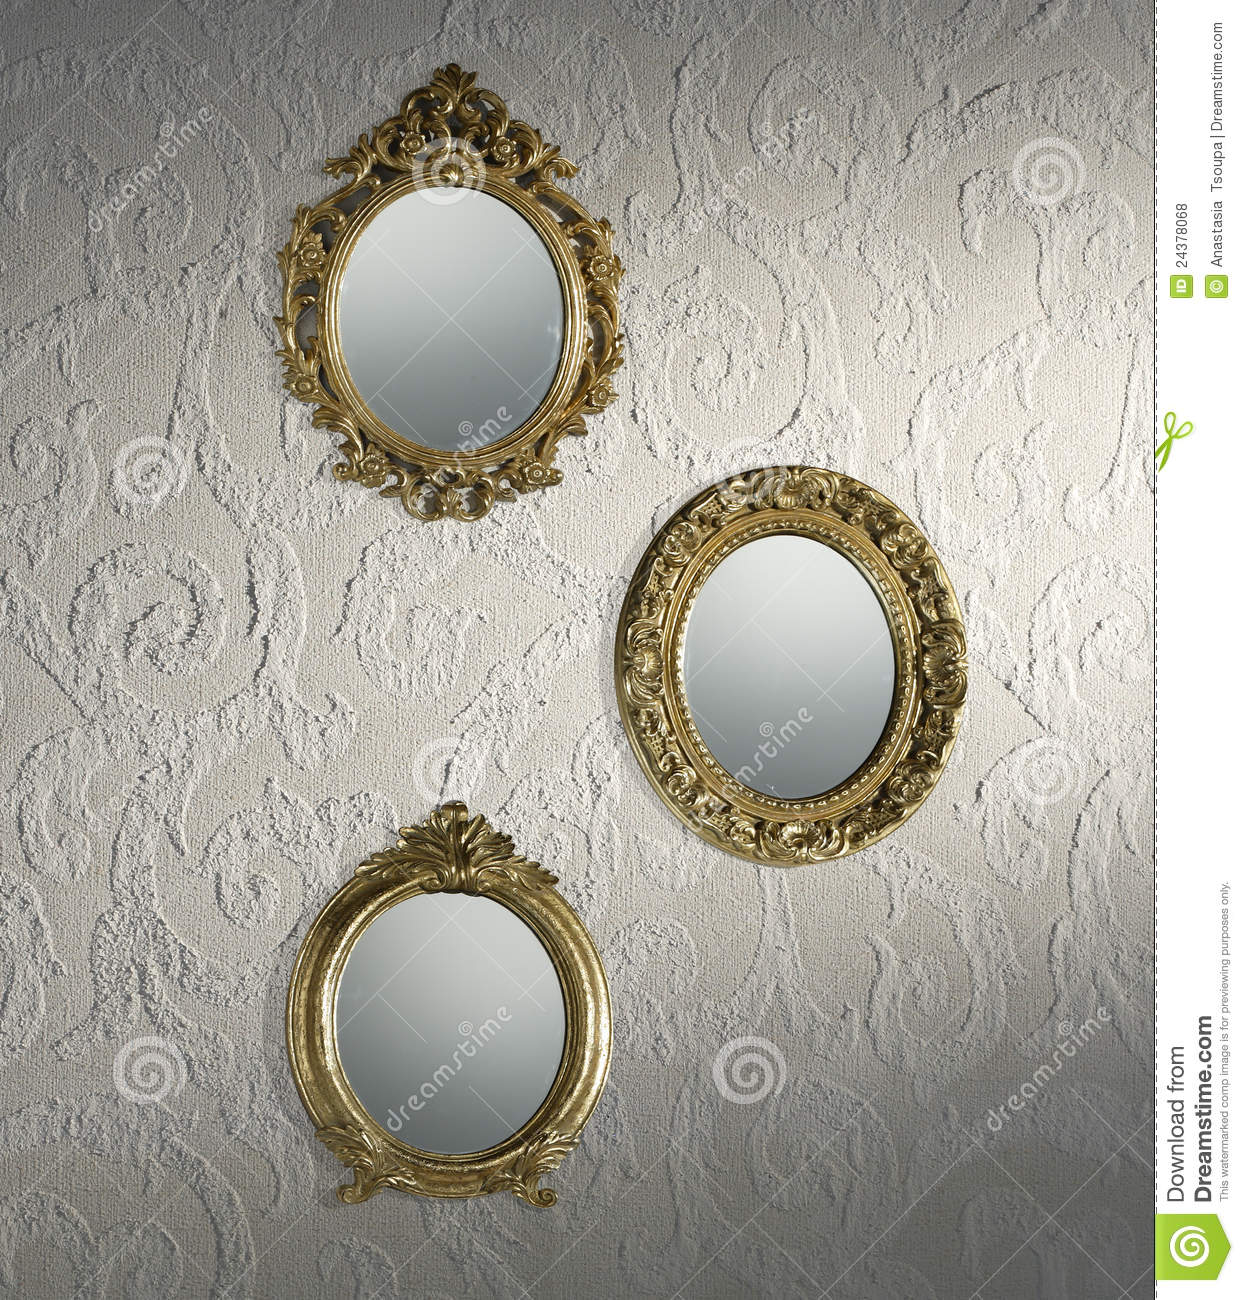 Antique mirrors wallpaper royalty free stock photos for Mirror wallpaper